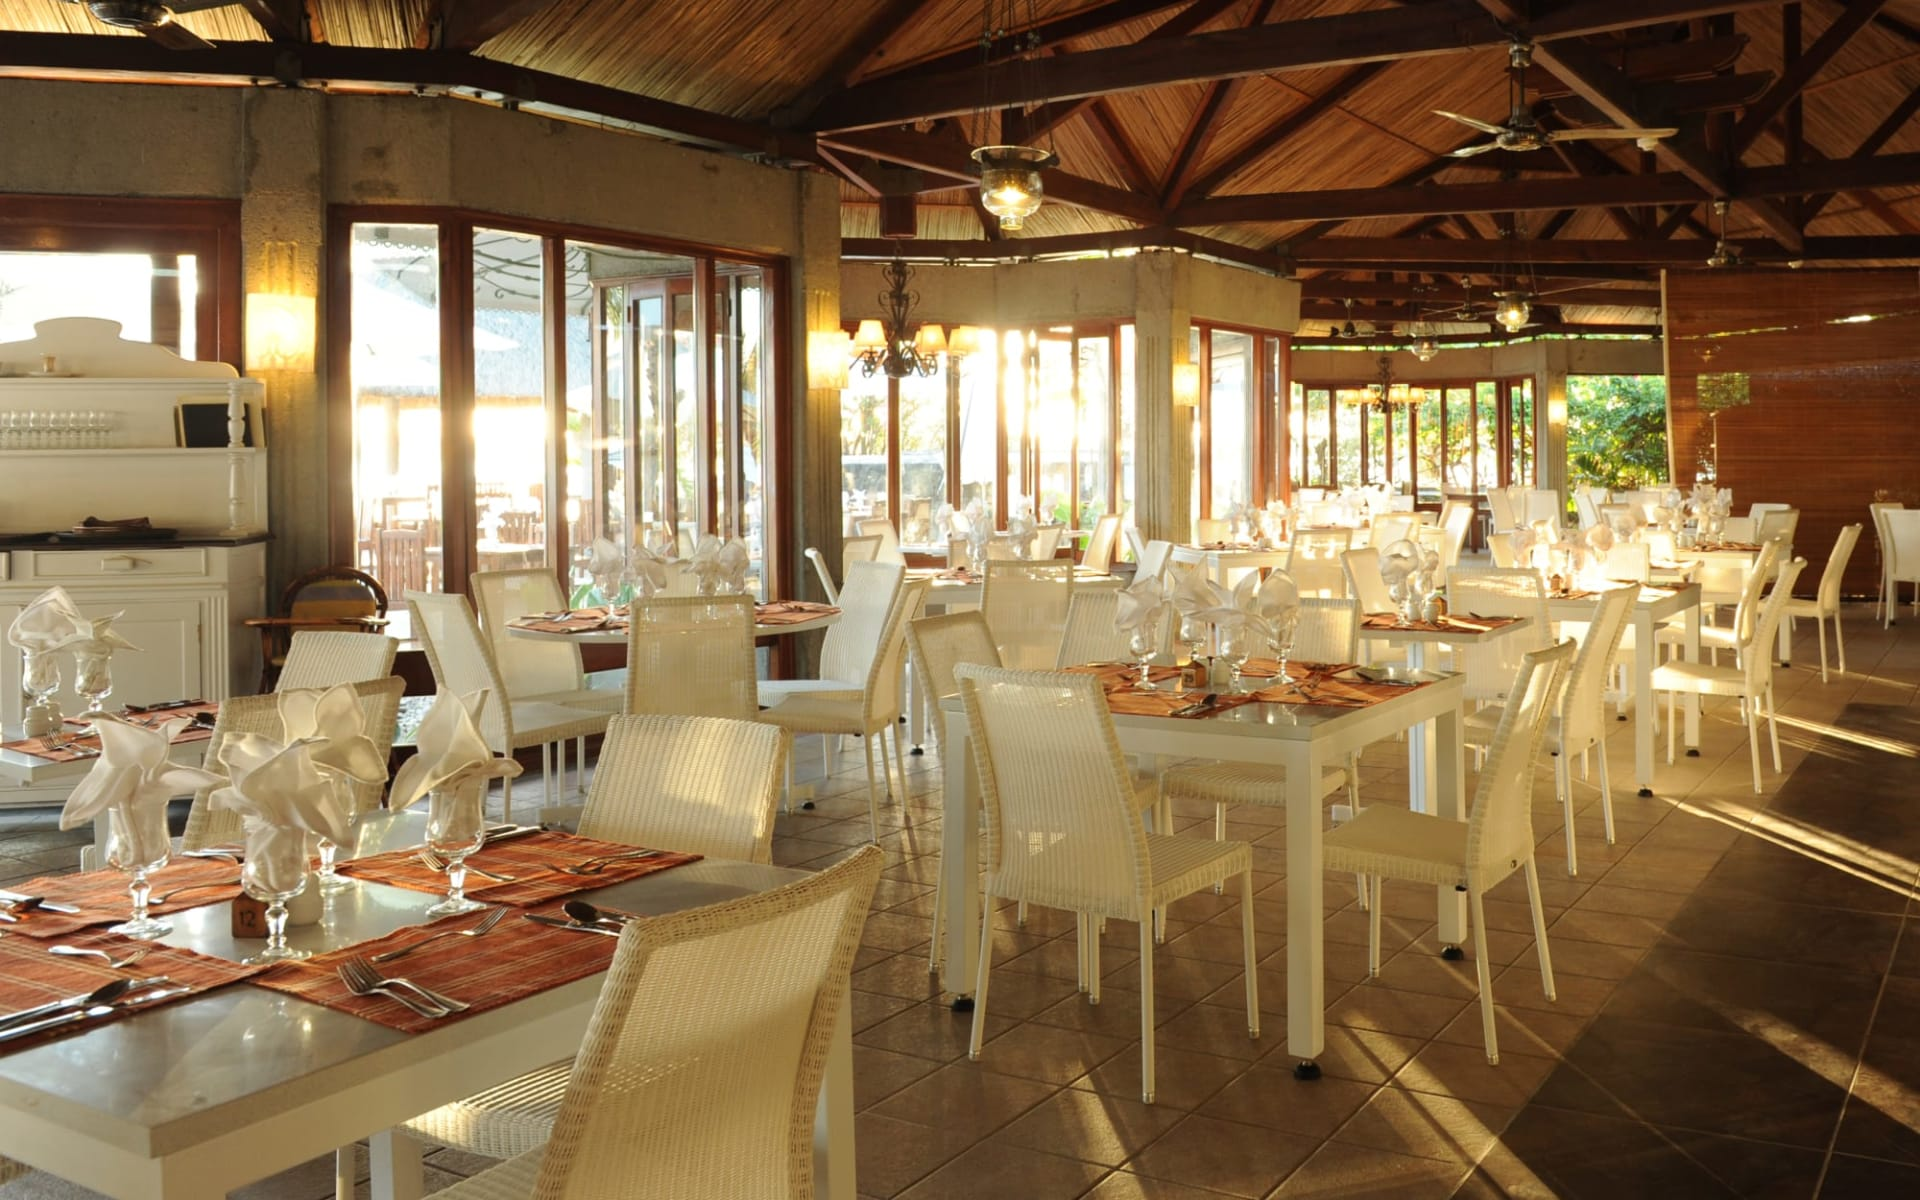 Veranda Grand Baie Hotel & Spa:  Poudre d'Or Restaurant